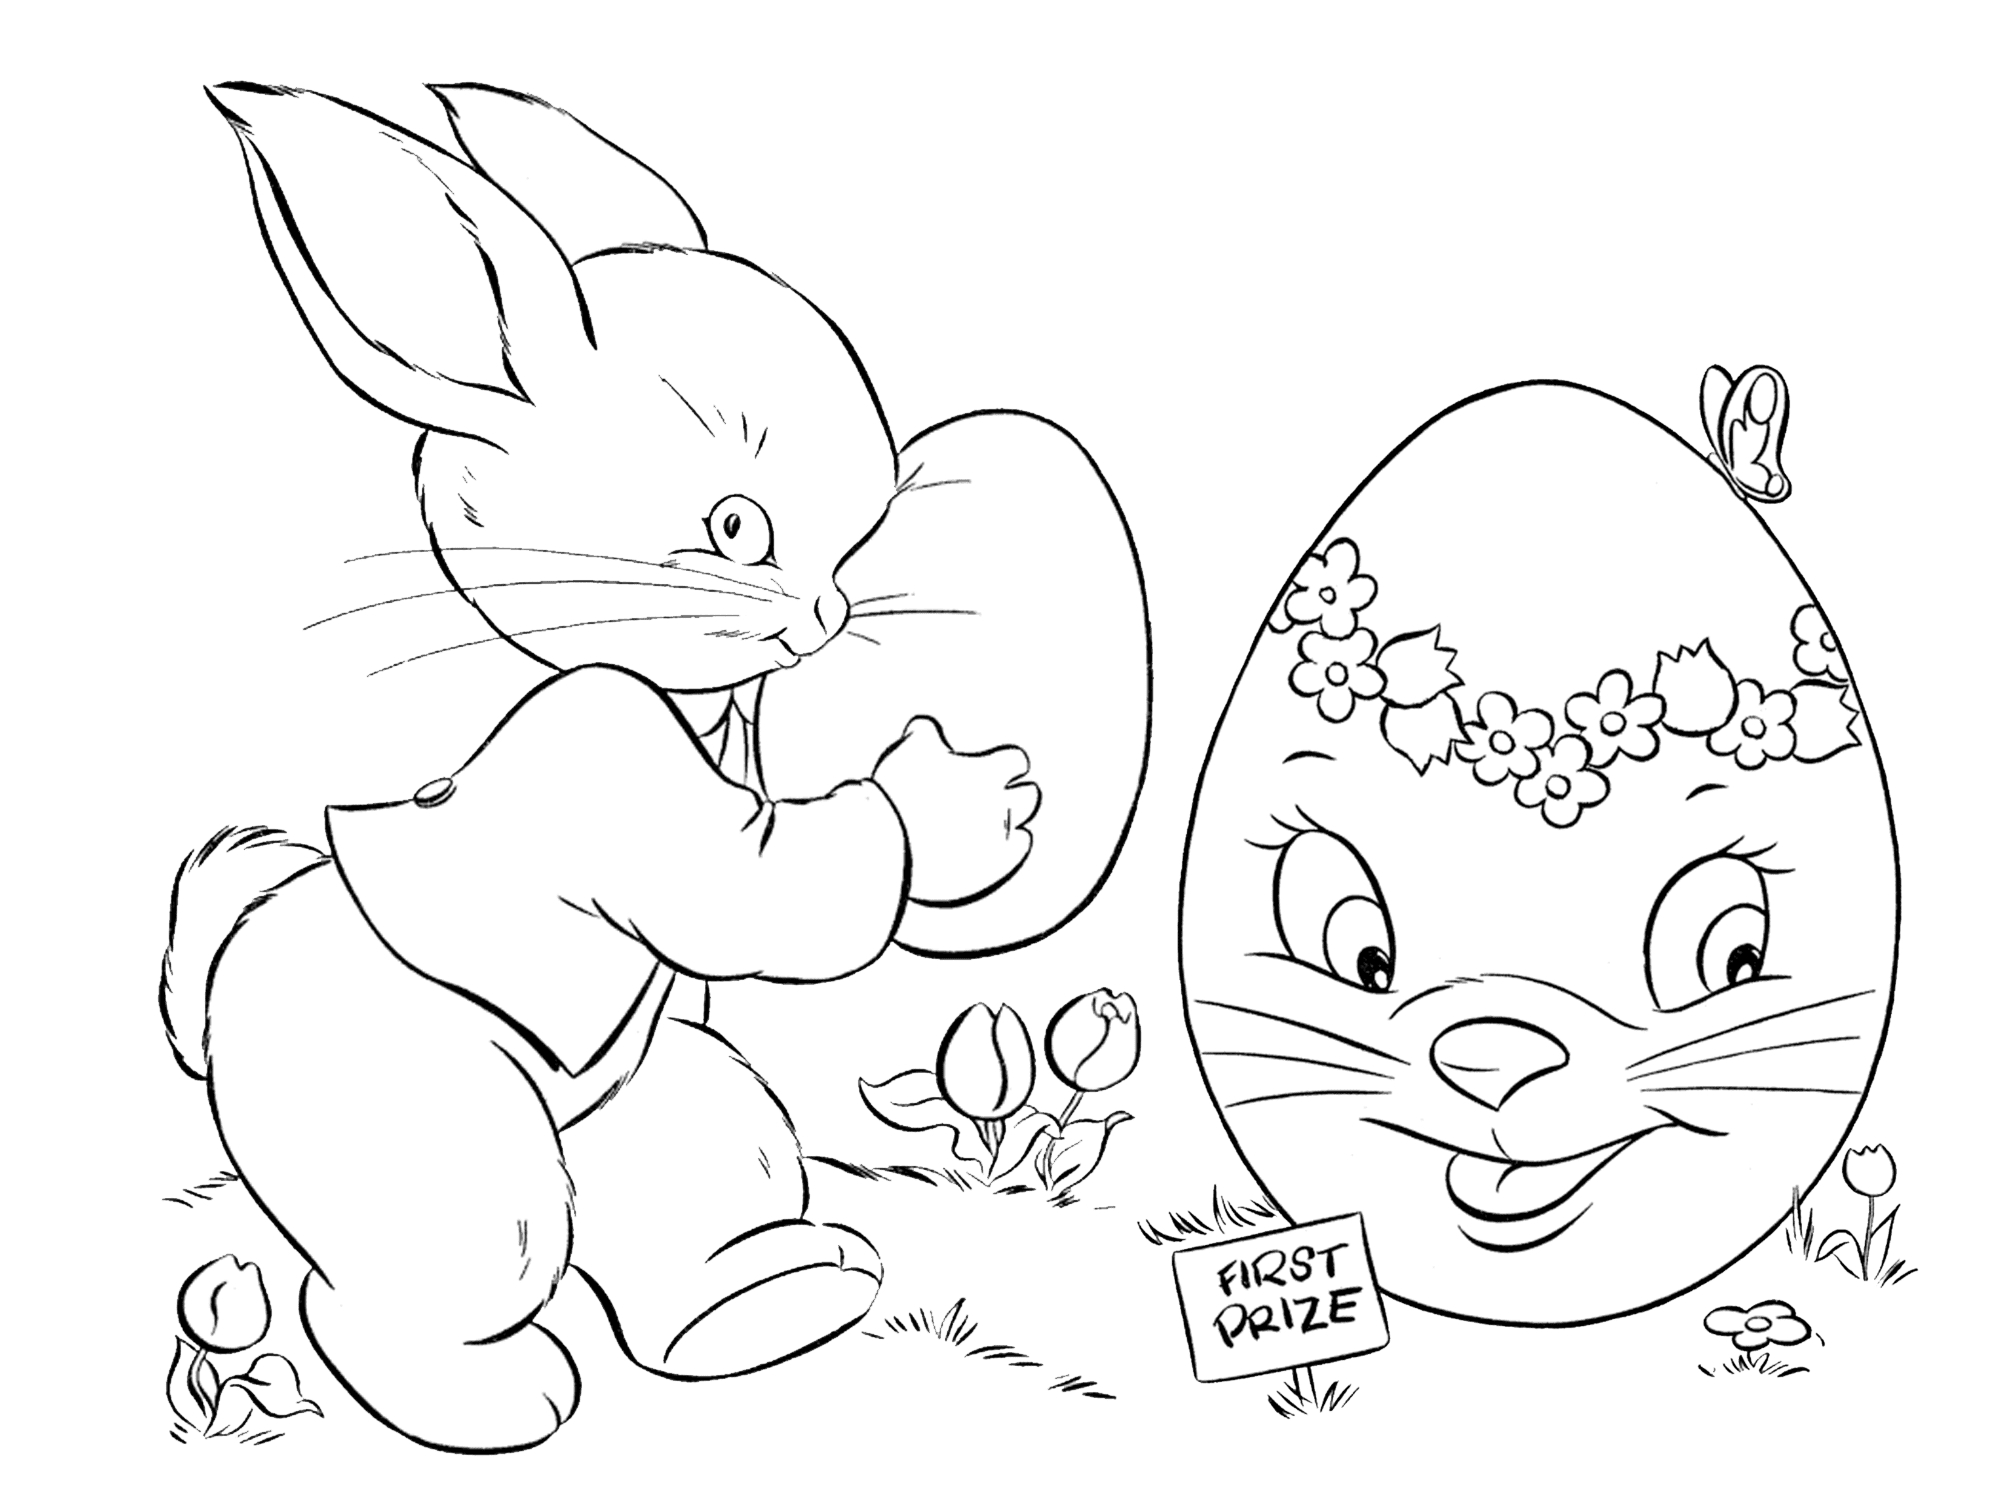 7 Places For Free, Printable Easter Egg Coloring Pages - Easter Color Pages Free Printable